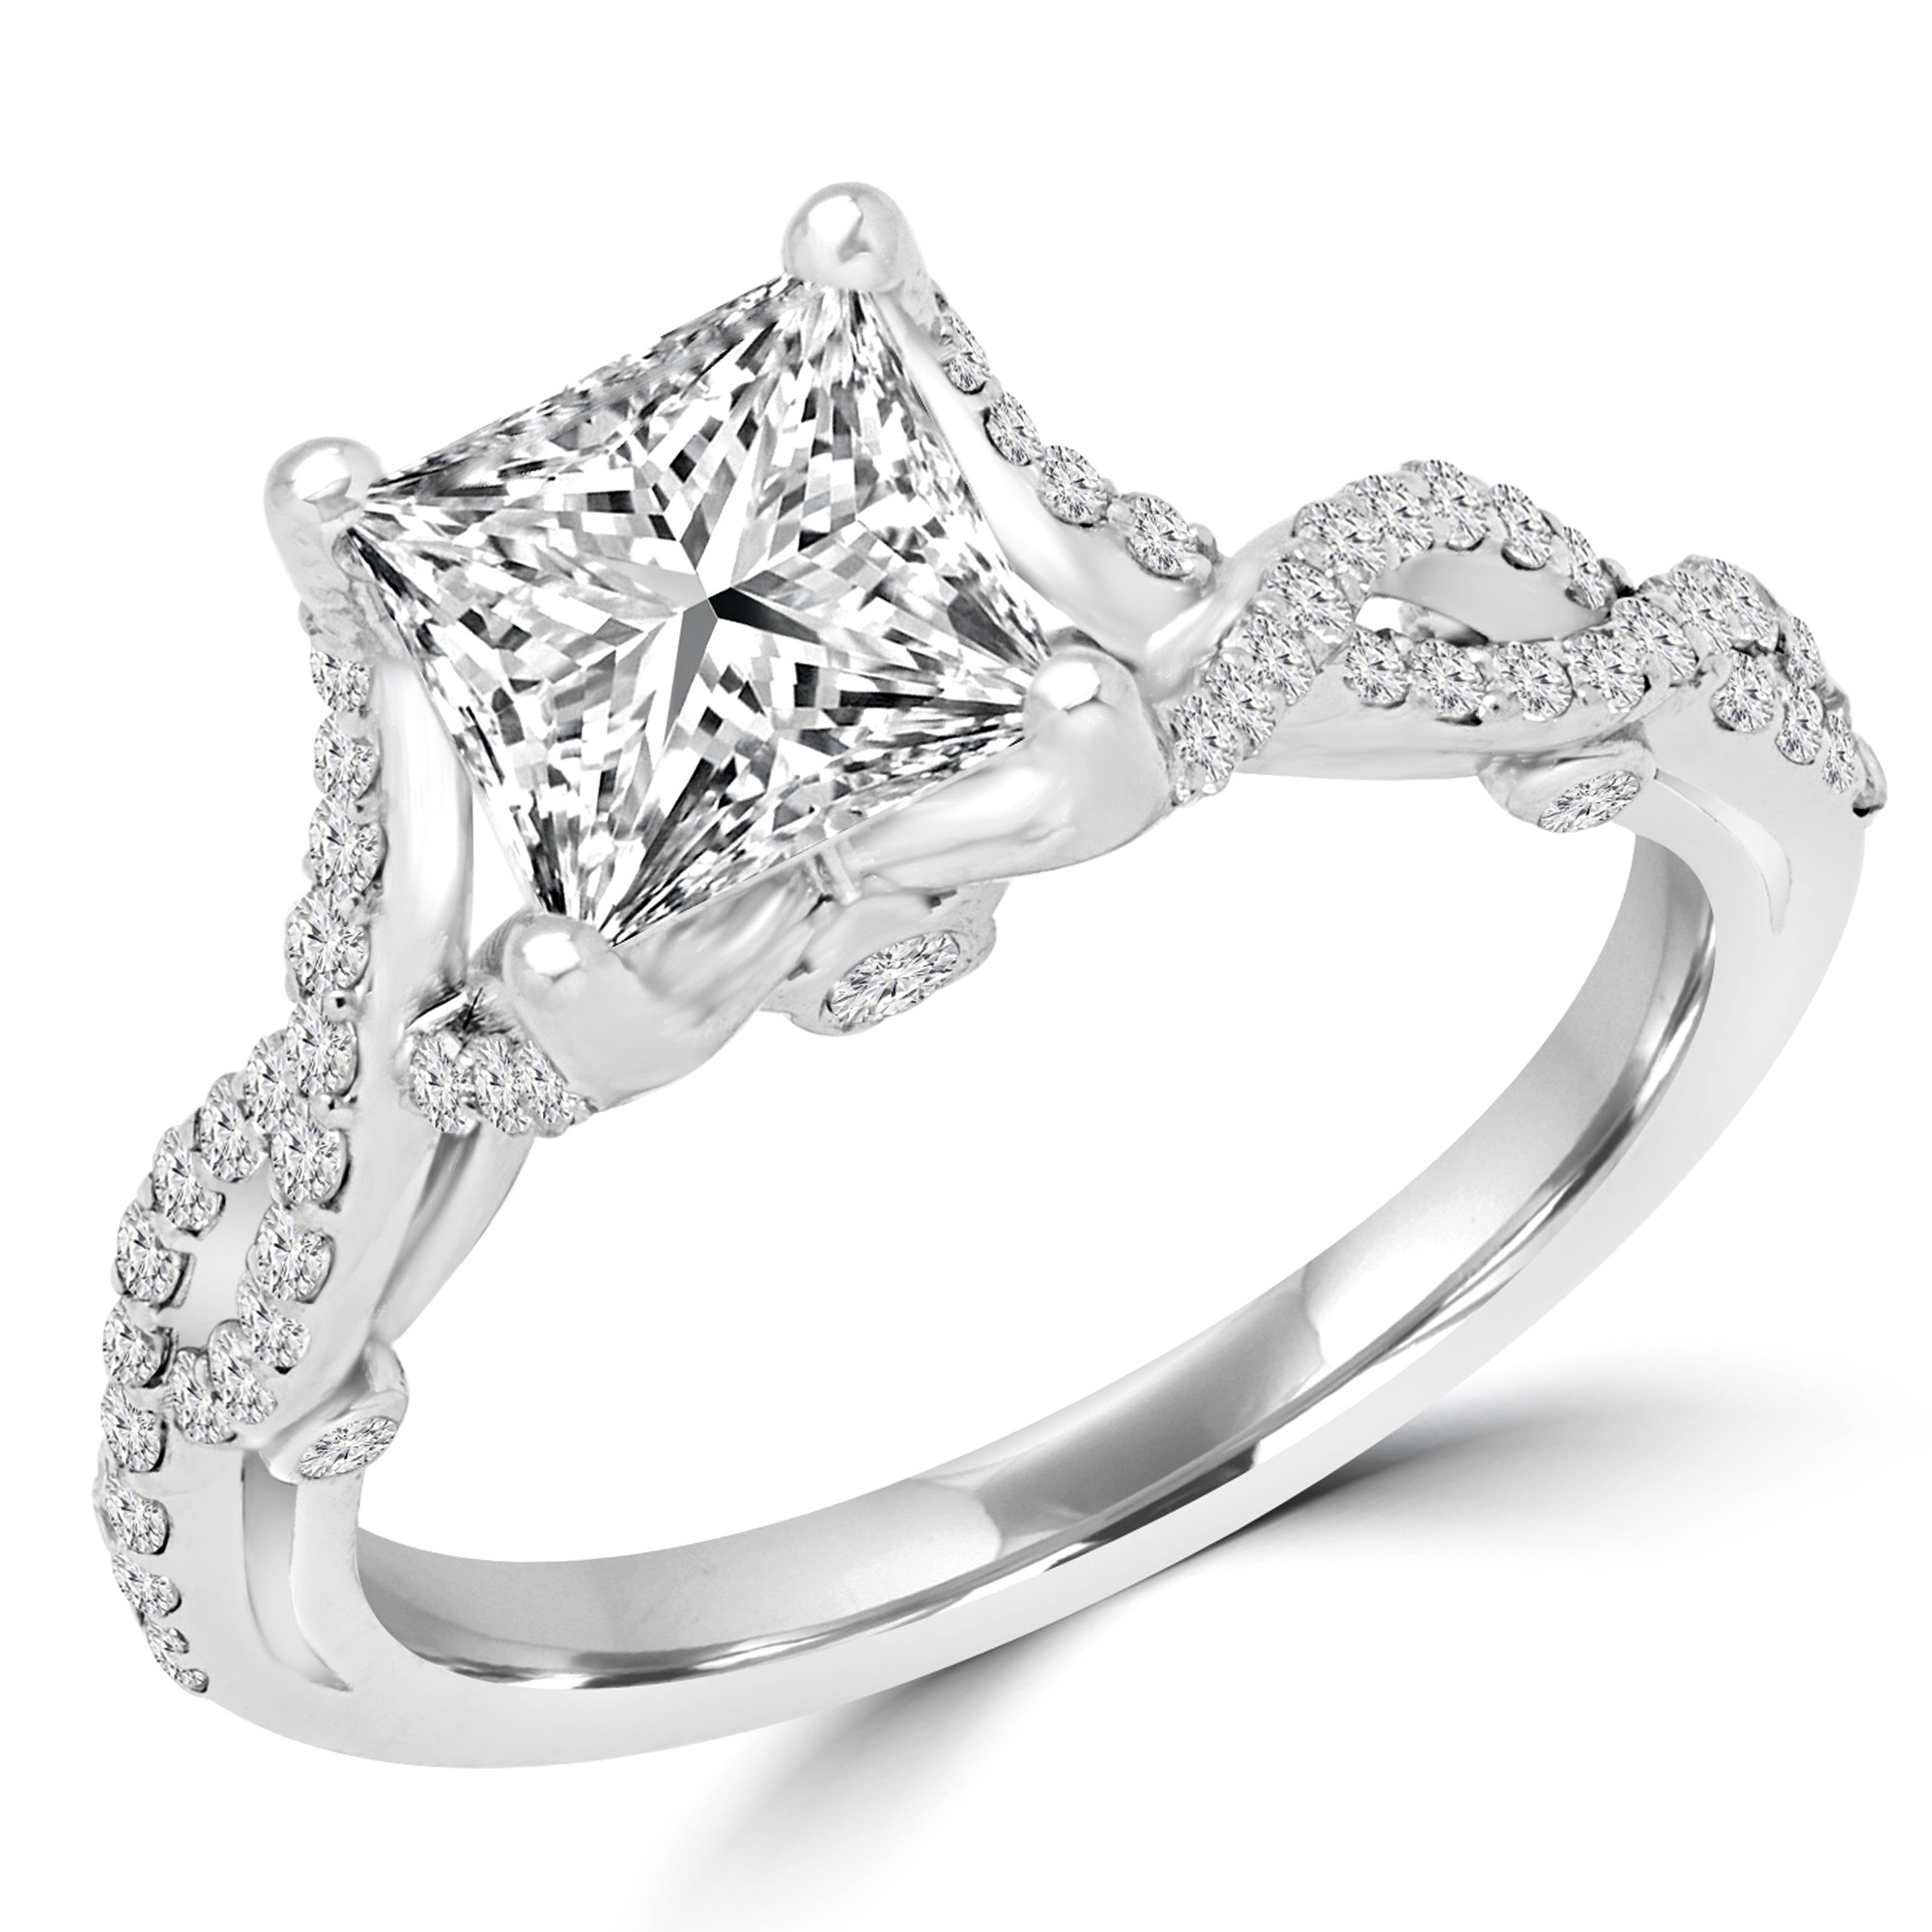 1 1/3 CTW Princess Diamond Halo Engagement Ring in 18K White Gold (MD170444) - image 2 of 2